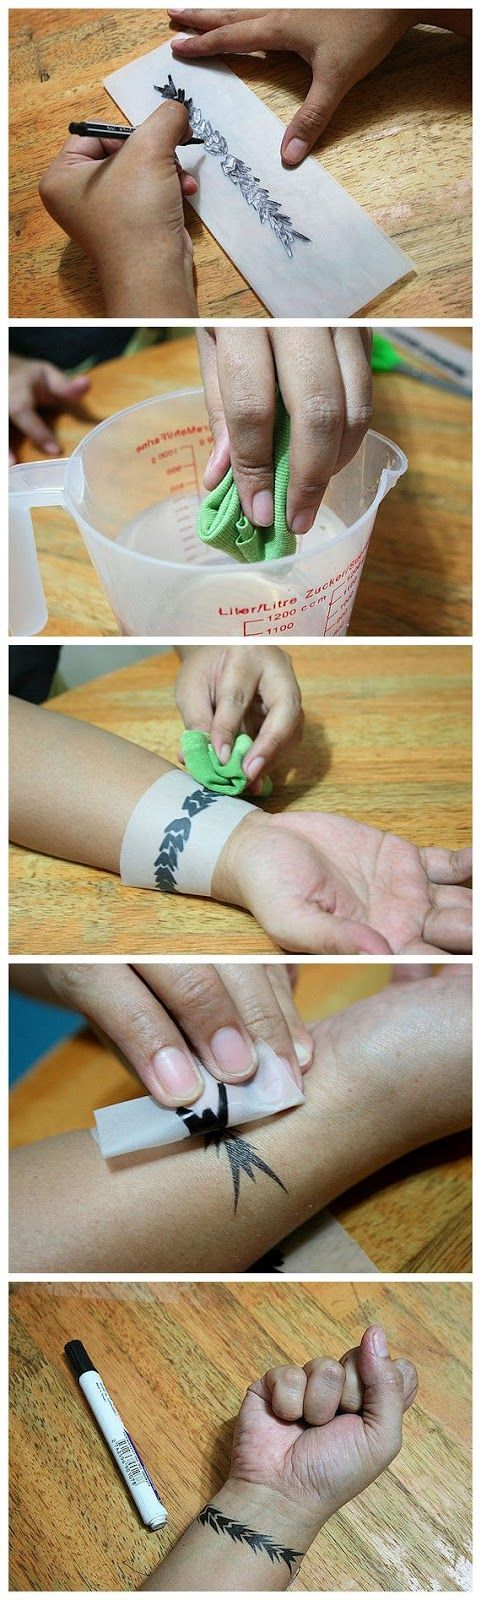 Make A Temporary Tattoo Crafts Cosplay Diy Diy Tattoo